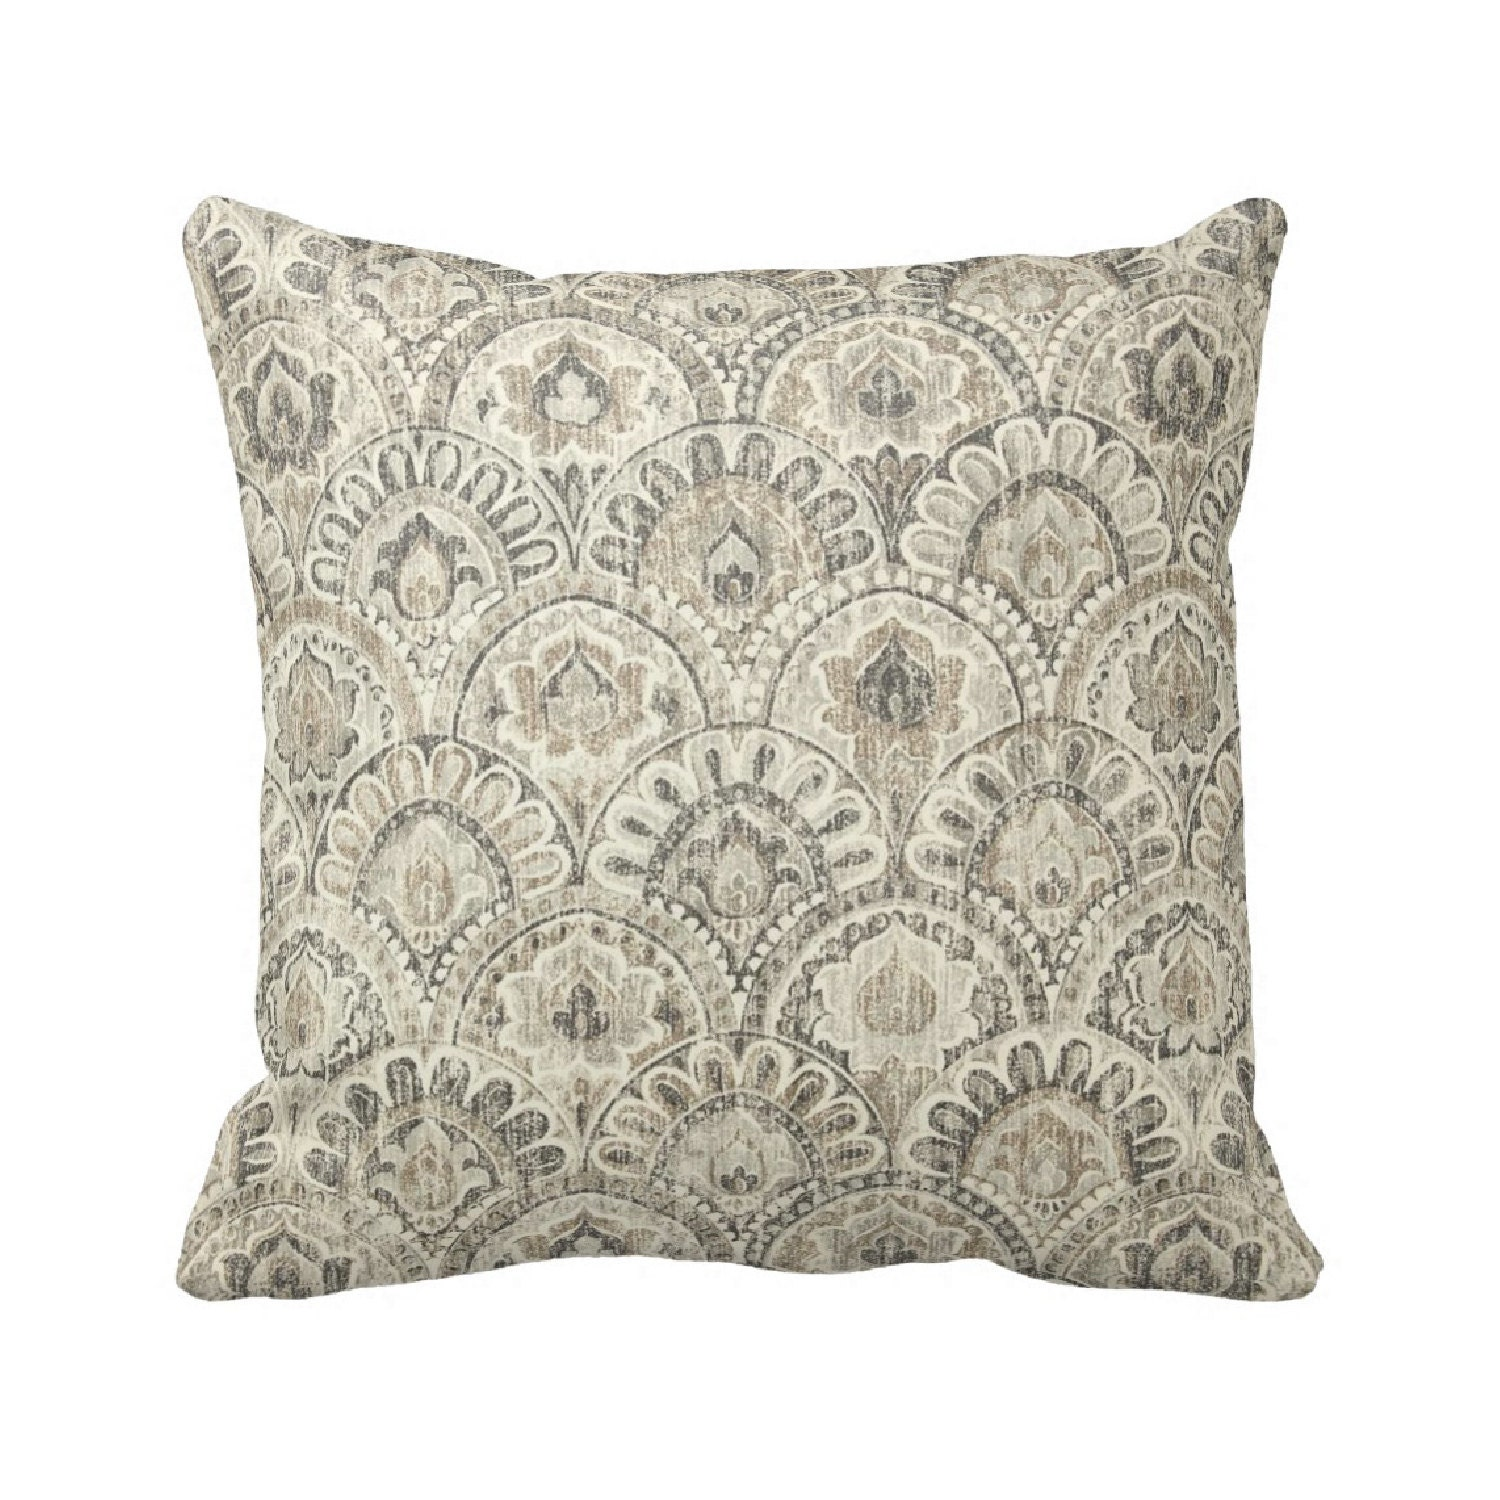 How To Make Zippered Throw Pillow Covers : Via Beech Zippered Throw Pillow Cover by Primal Vogue